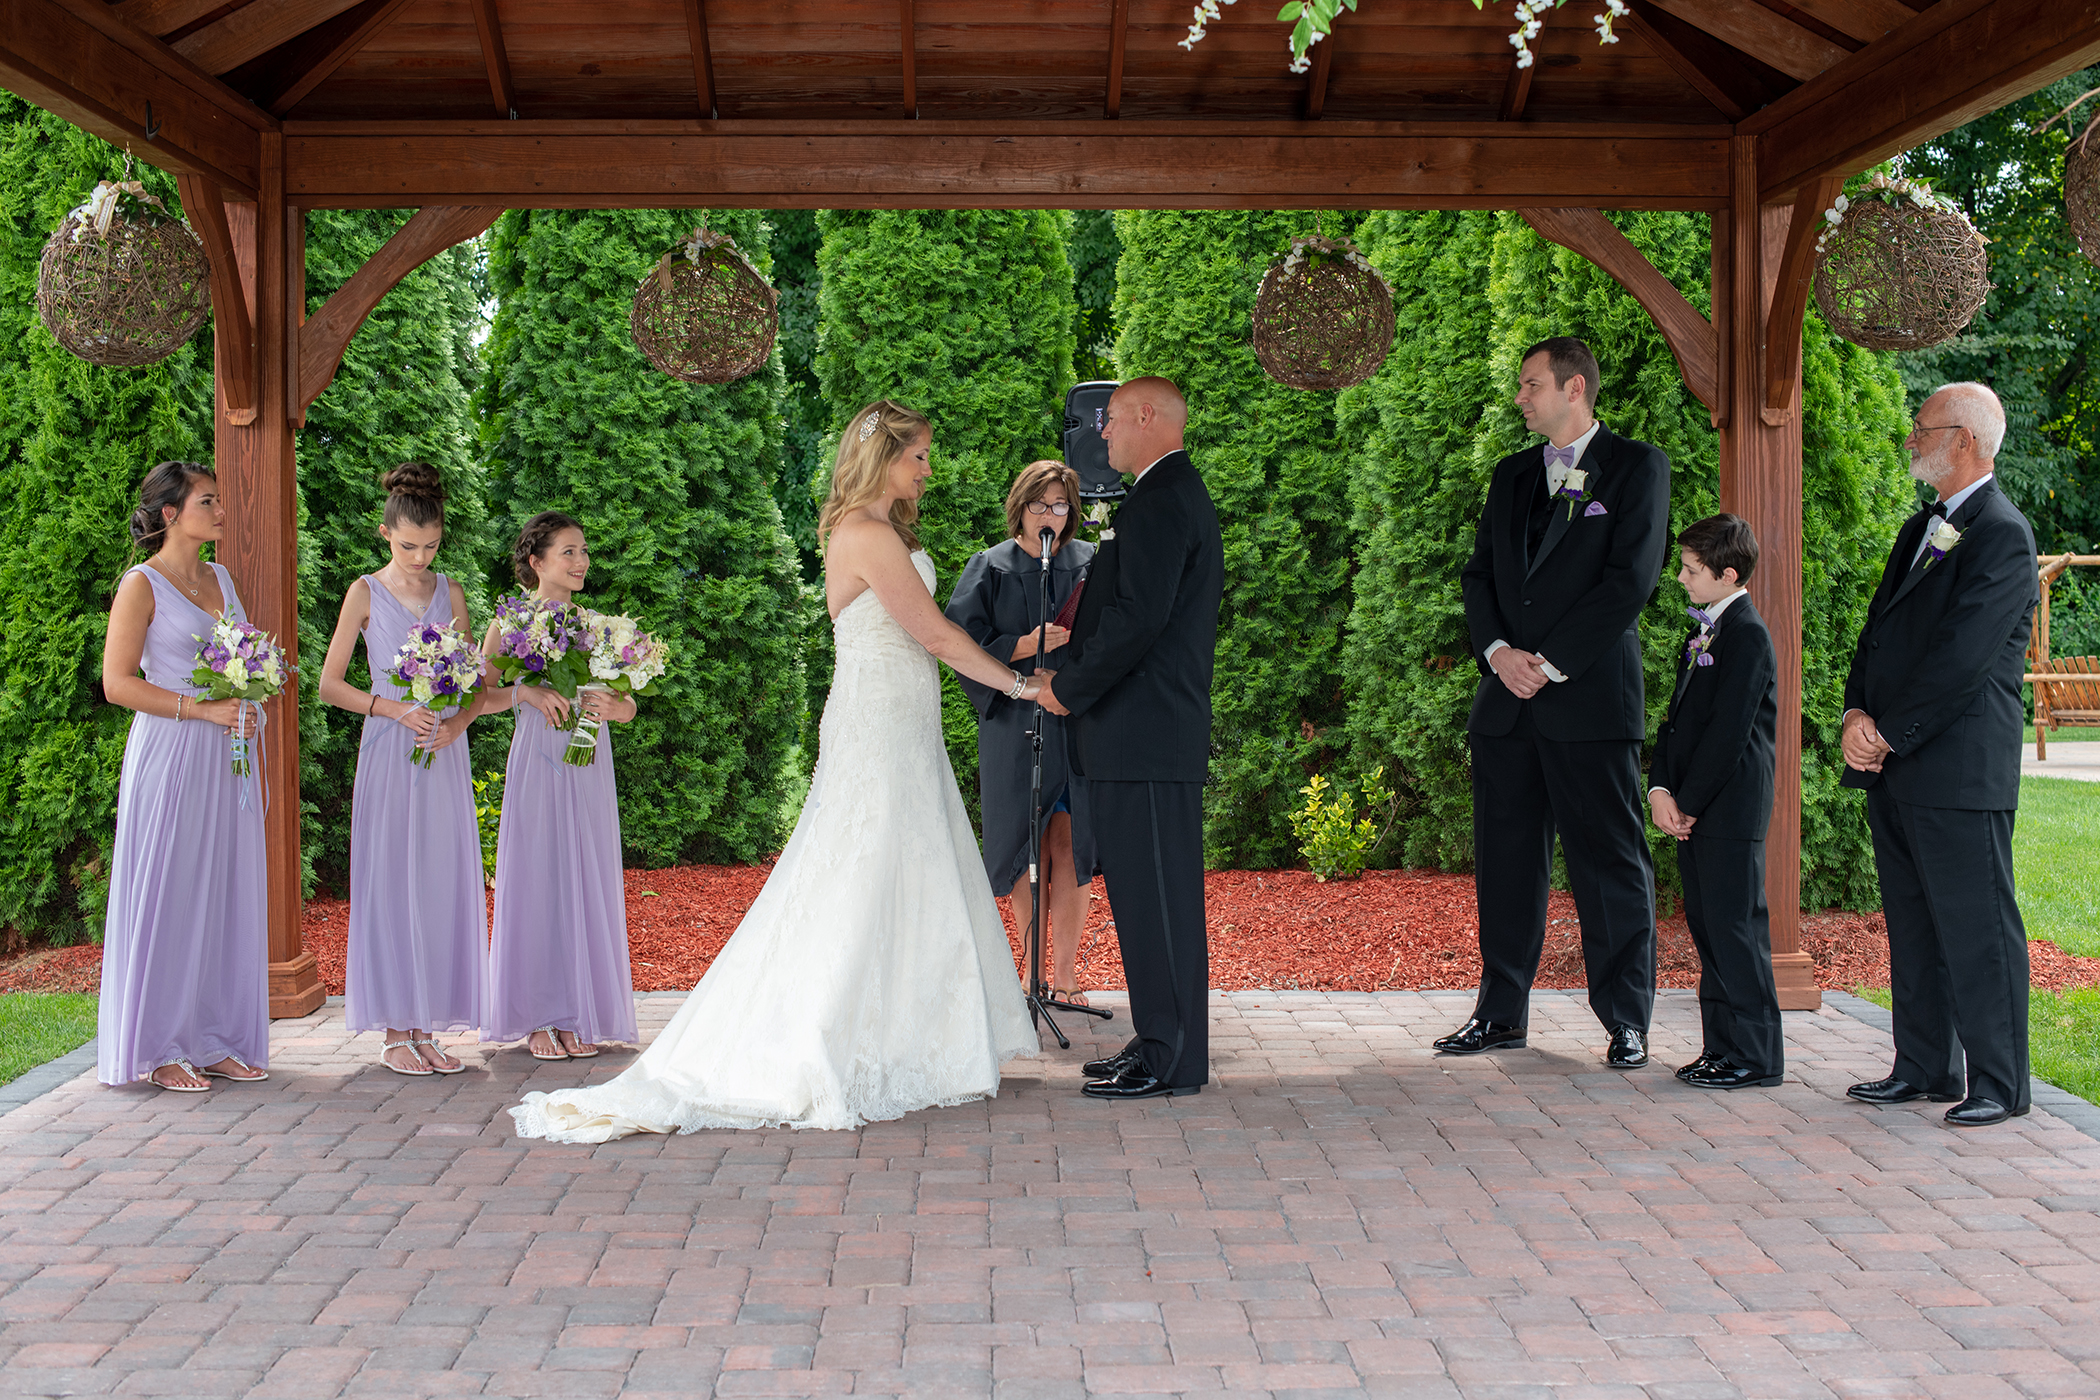 Wedding Ceremony at The Lodge at Maneely's